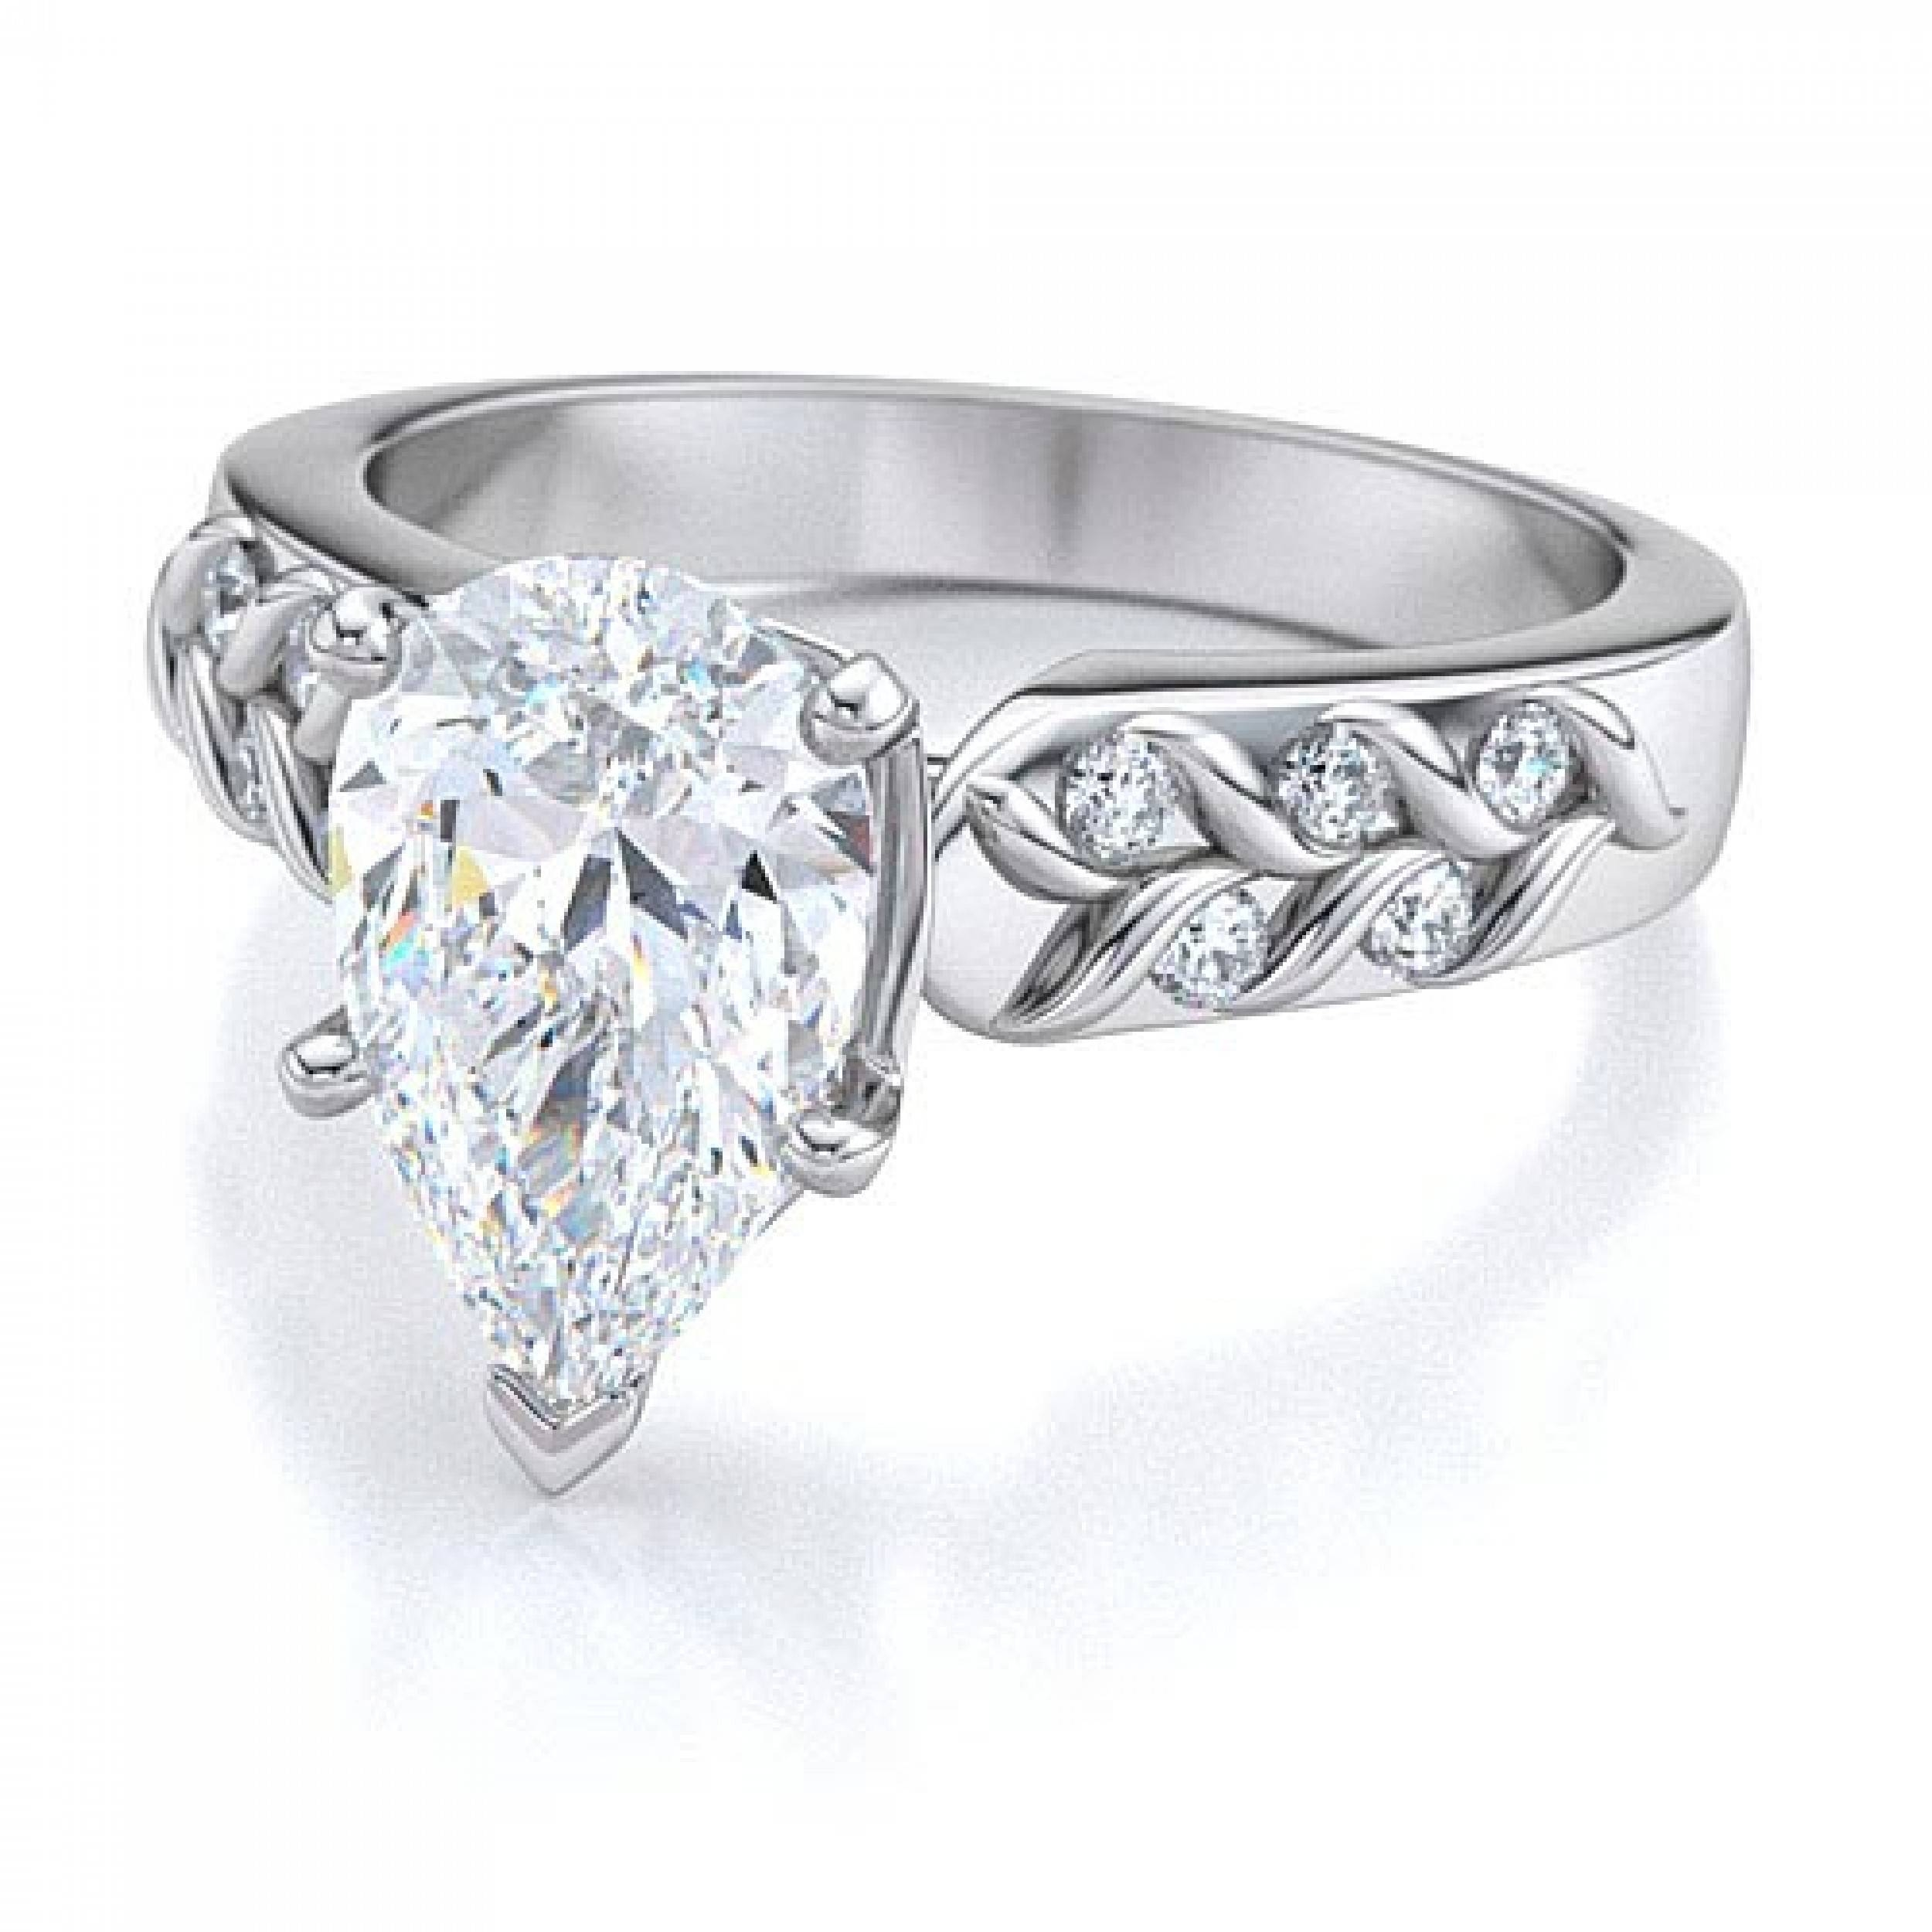 40Ctw Art Deco Pear Shape Sidestones Engagement Ring Setting In Throughout Pear Shaped Diamond Settings Engagement Rings (View 5 of 15)